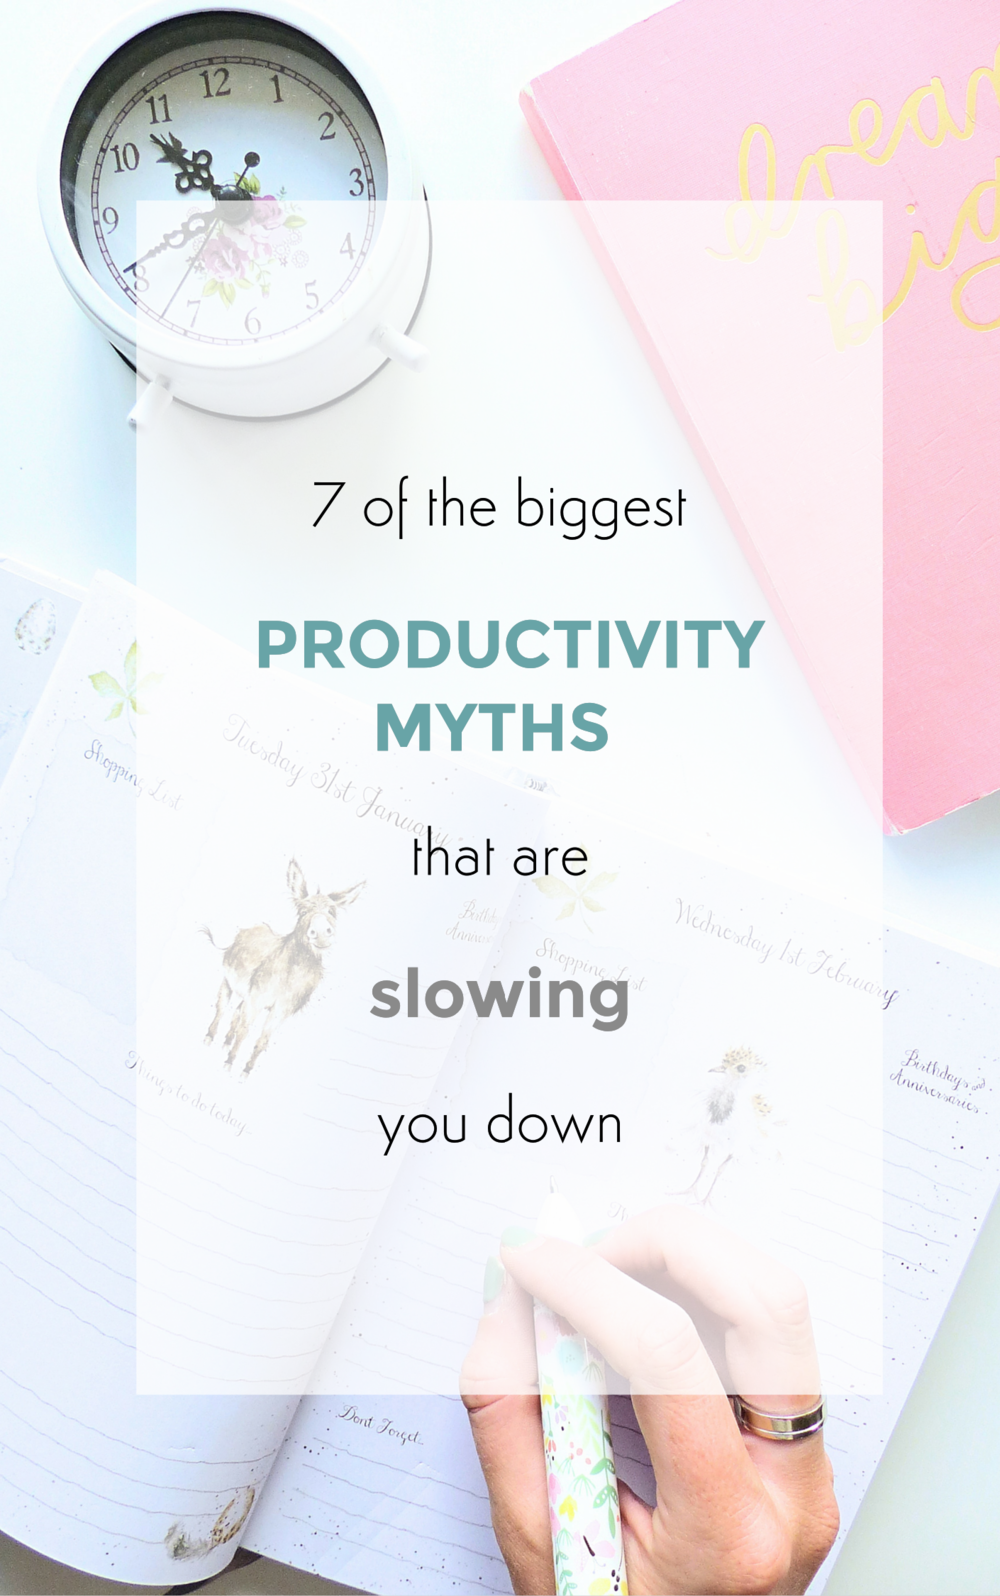 7 of the biggest productivity myths that are slowing you down